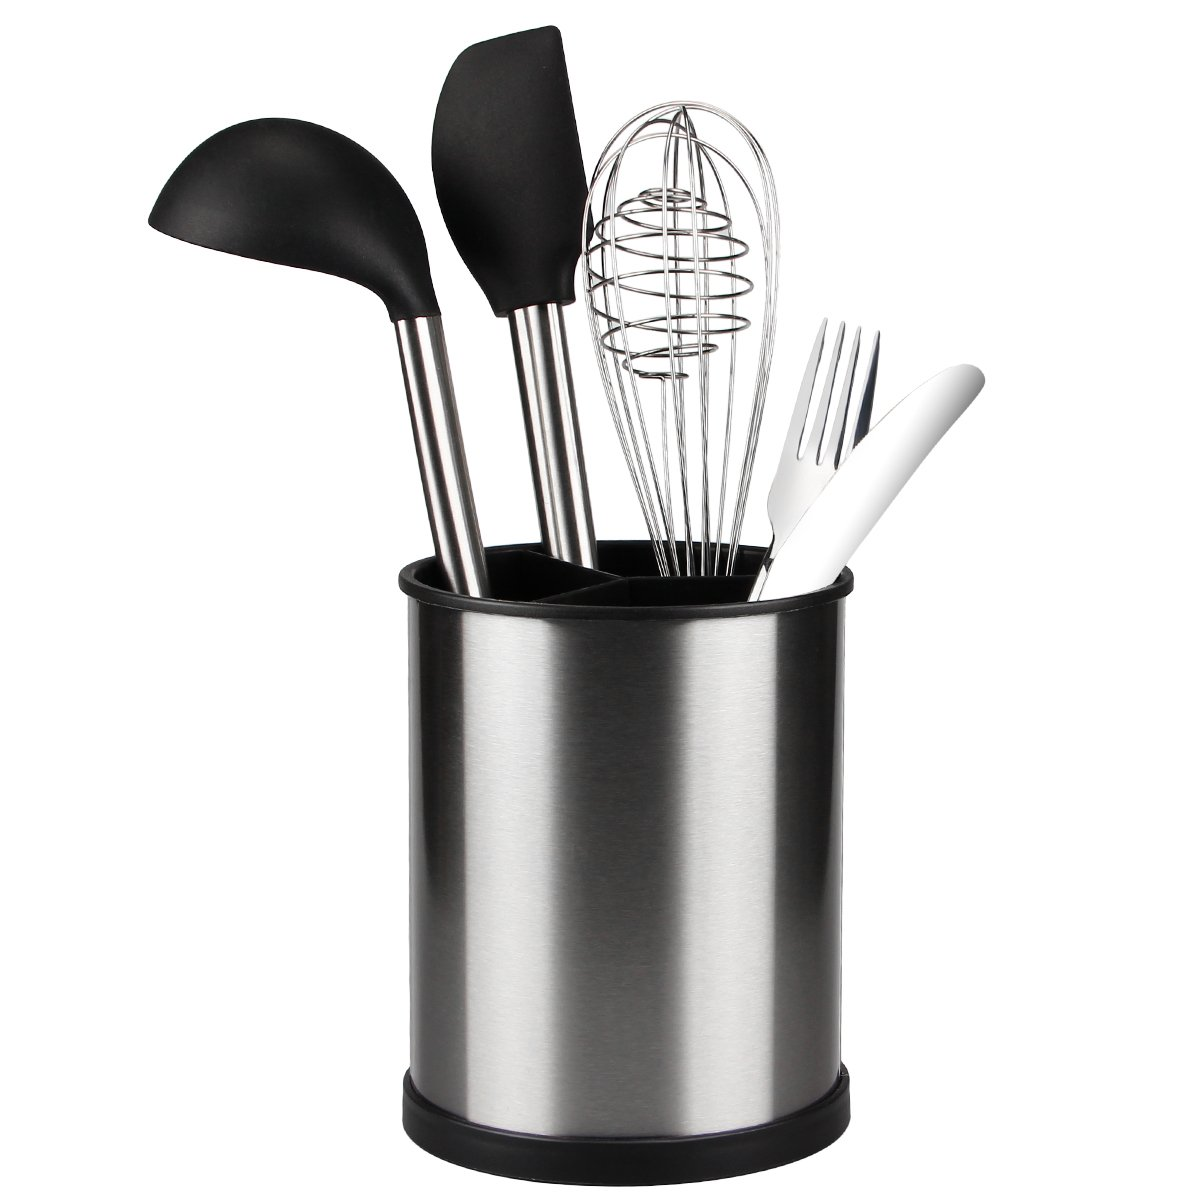 Kitchen Utensil Holder, Stainless Steel Utensil Crock Flatware Caddy Utensil Organizer Container for Kitchen Counter Top, Easily Organize Silverware with 3 Compartments